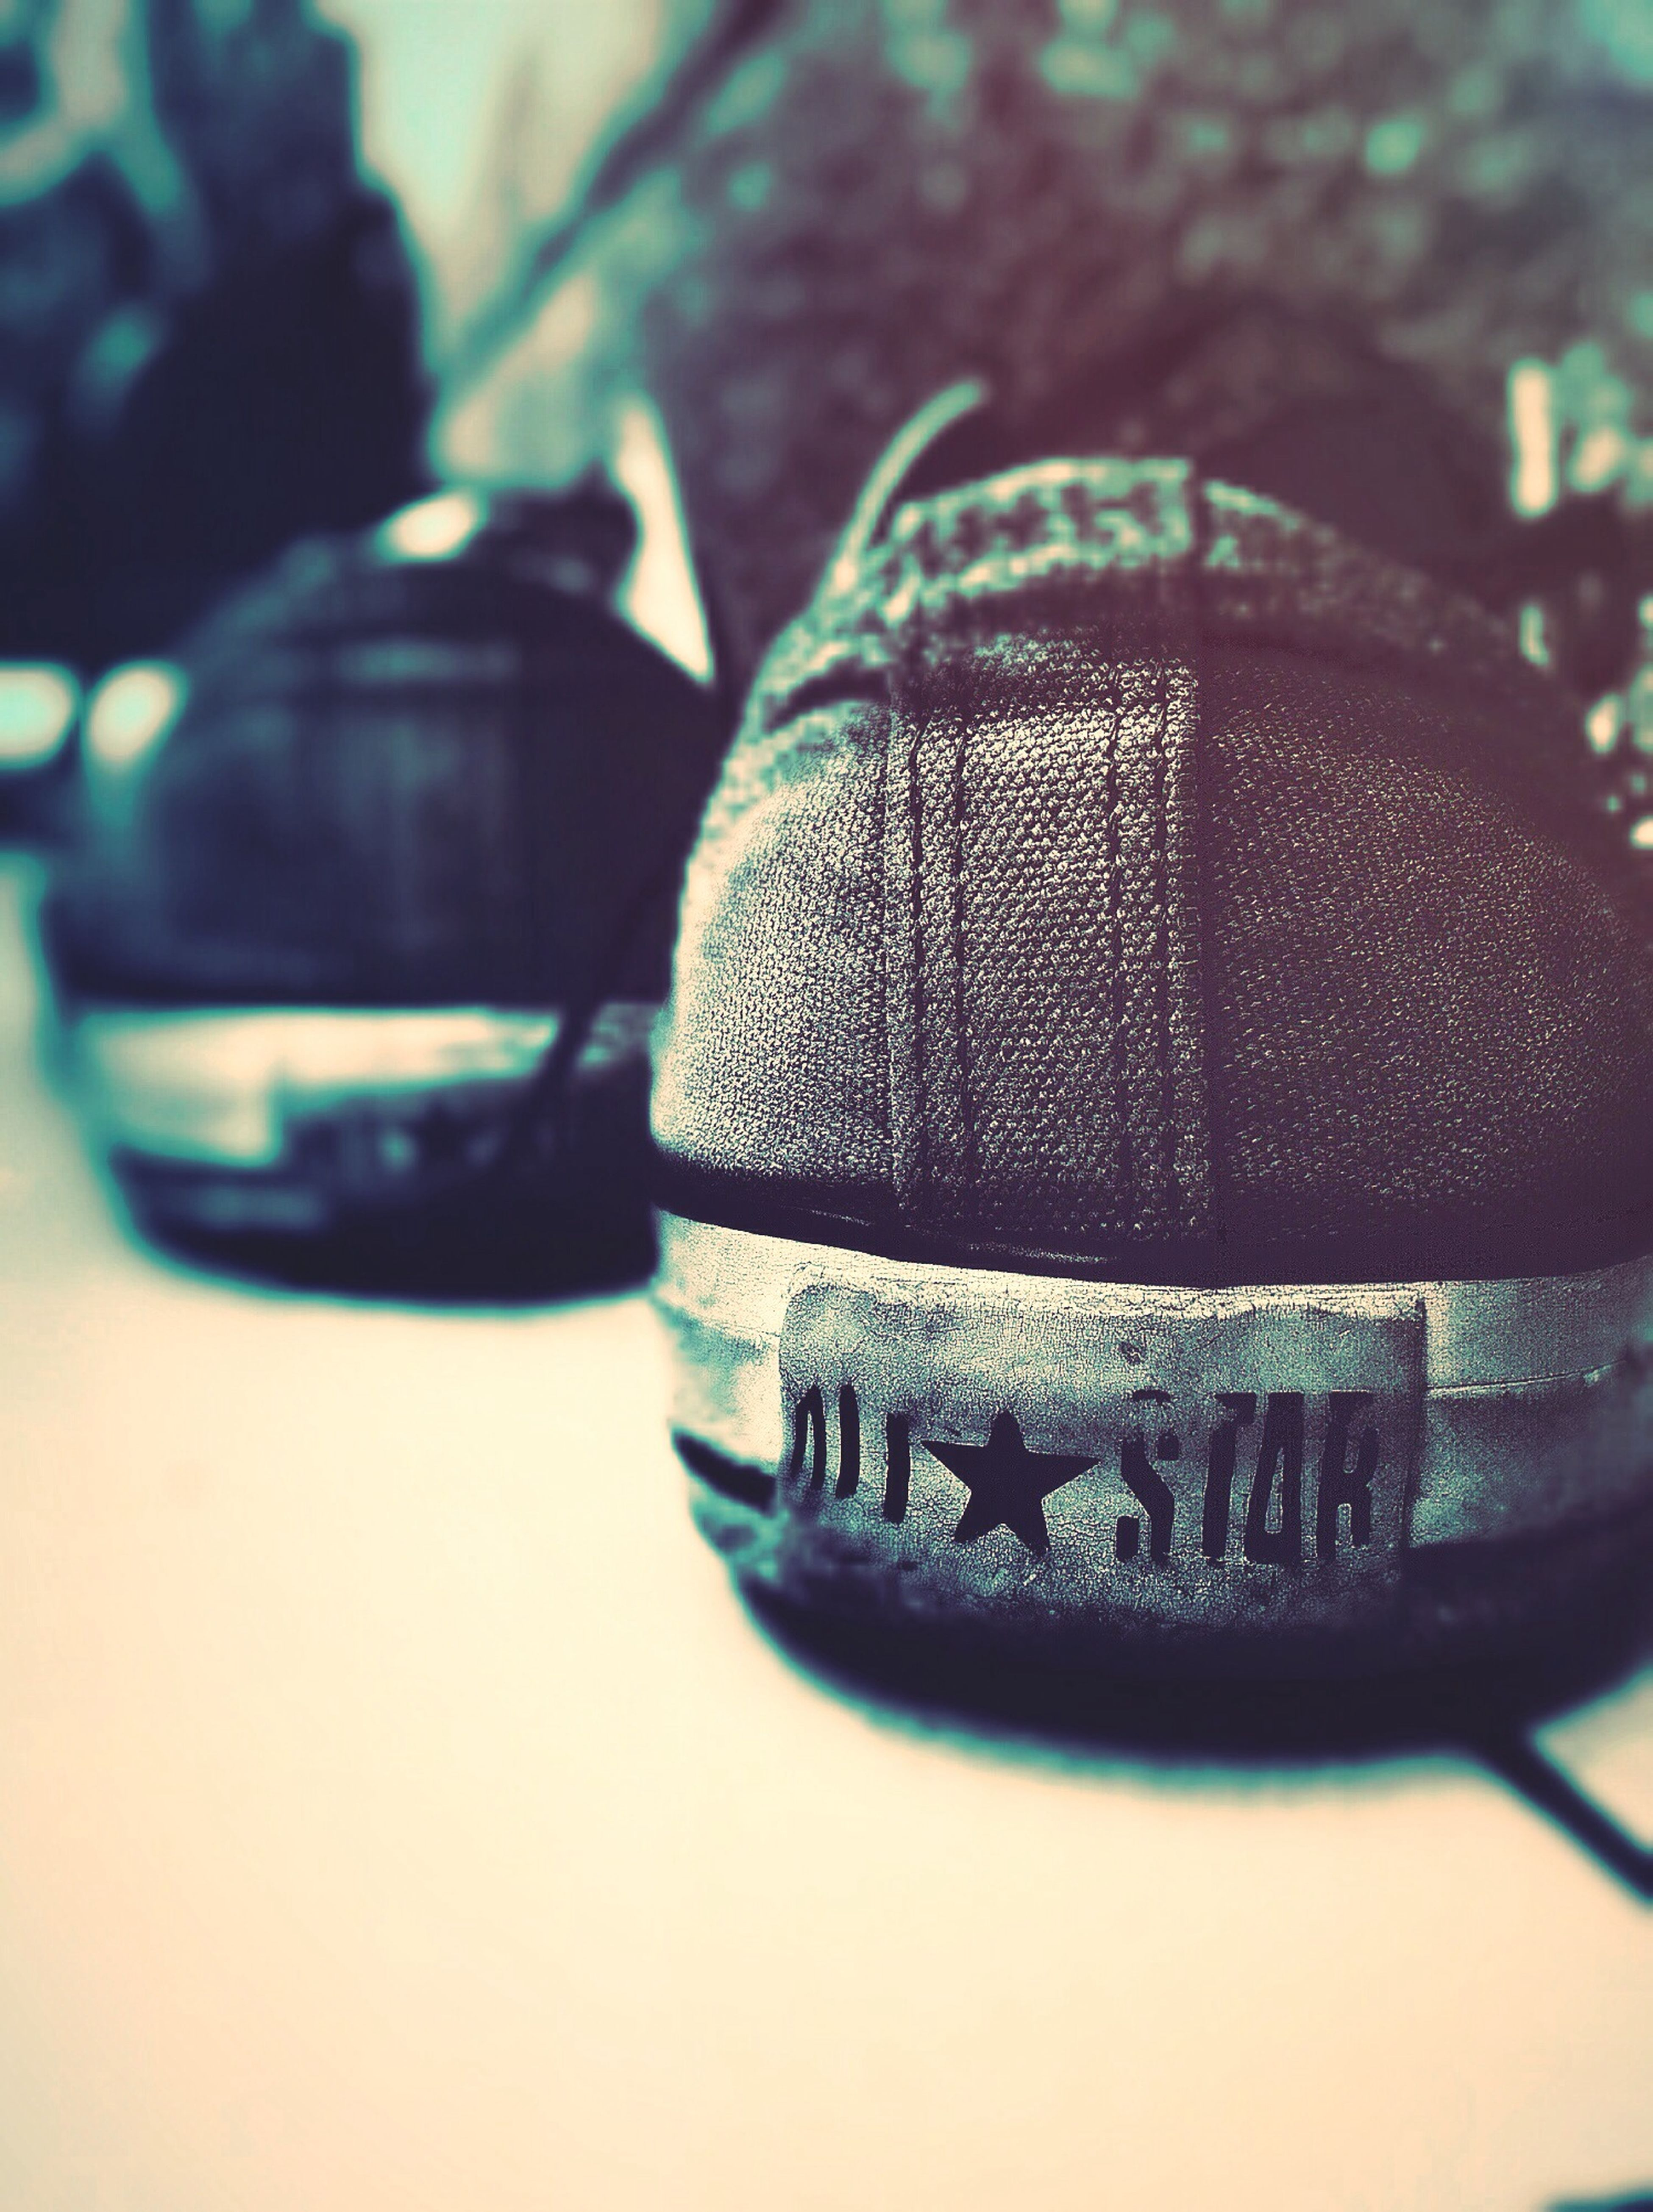 Urban Life Shoes Converse Simple Photography Mobhasymi